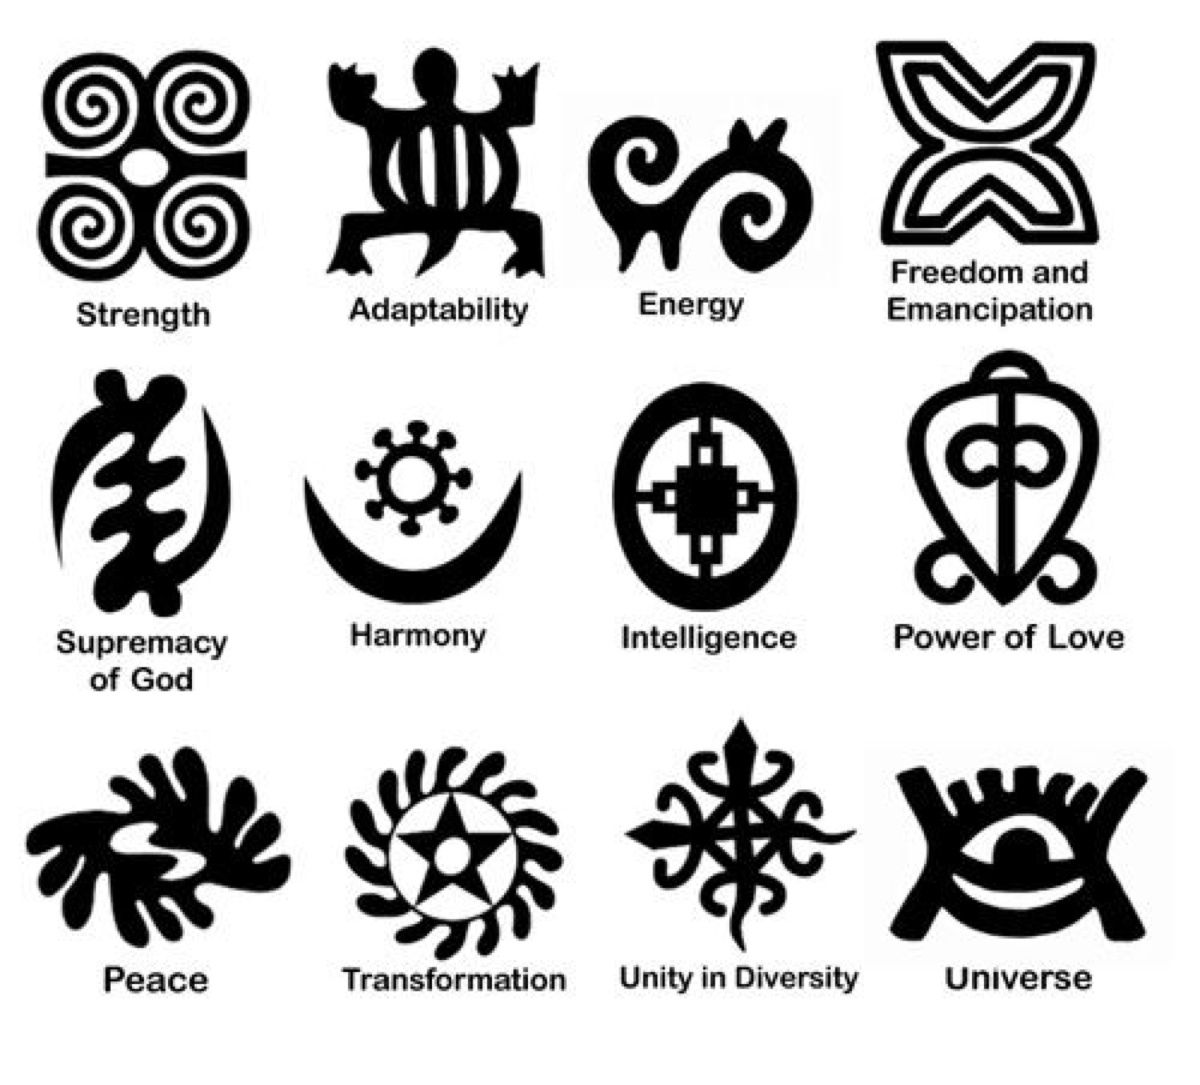 Hawaiian symbol for love choice image symbol and sign ideas image result various pinterest samoa symbols and their definitions holy shit i love all of these buycottarizona